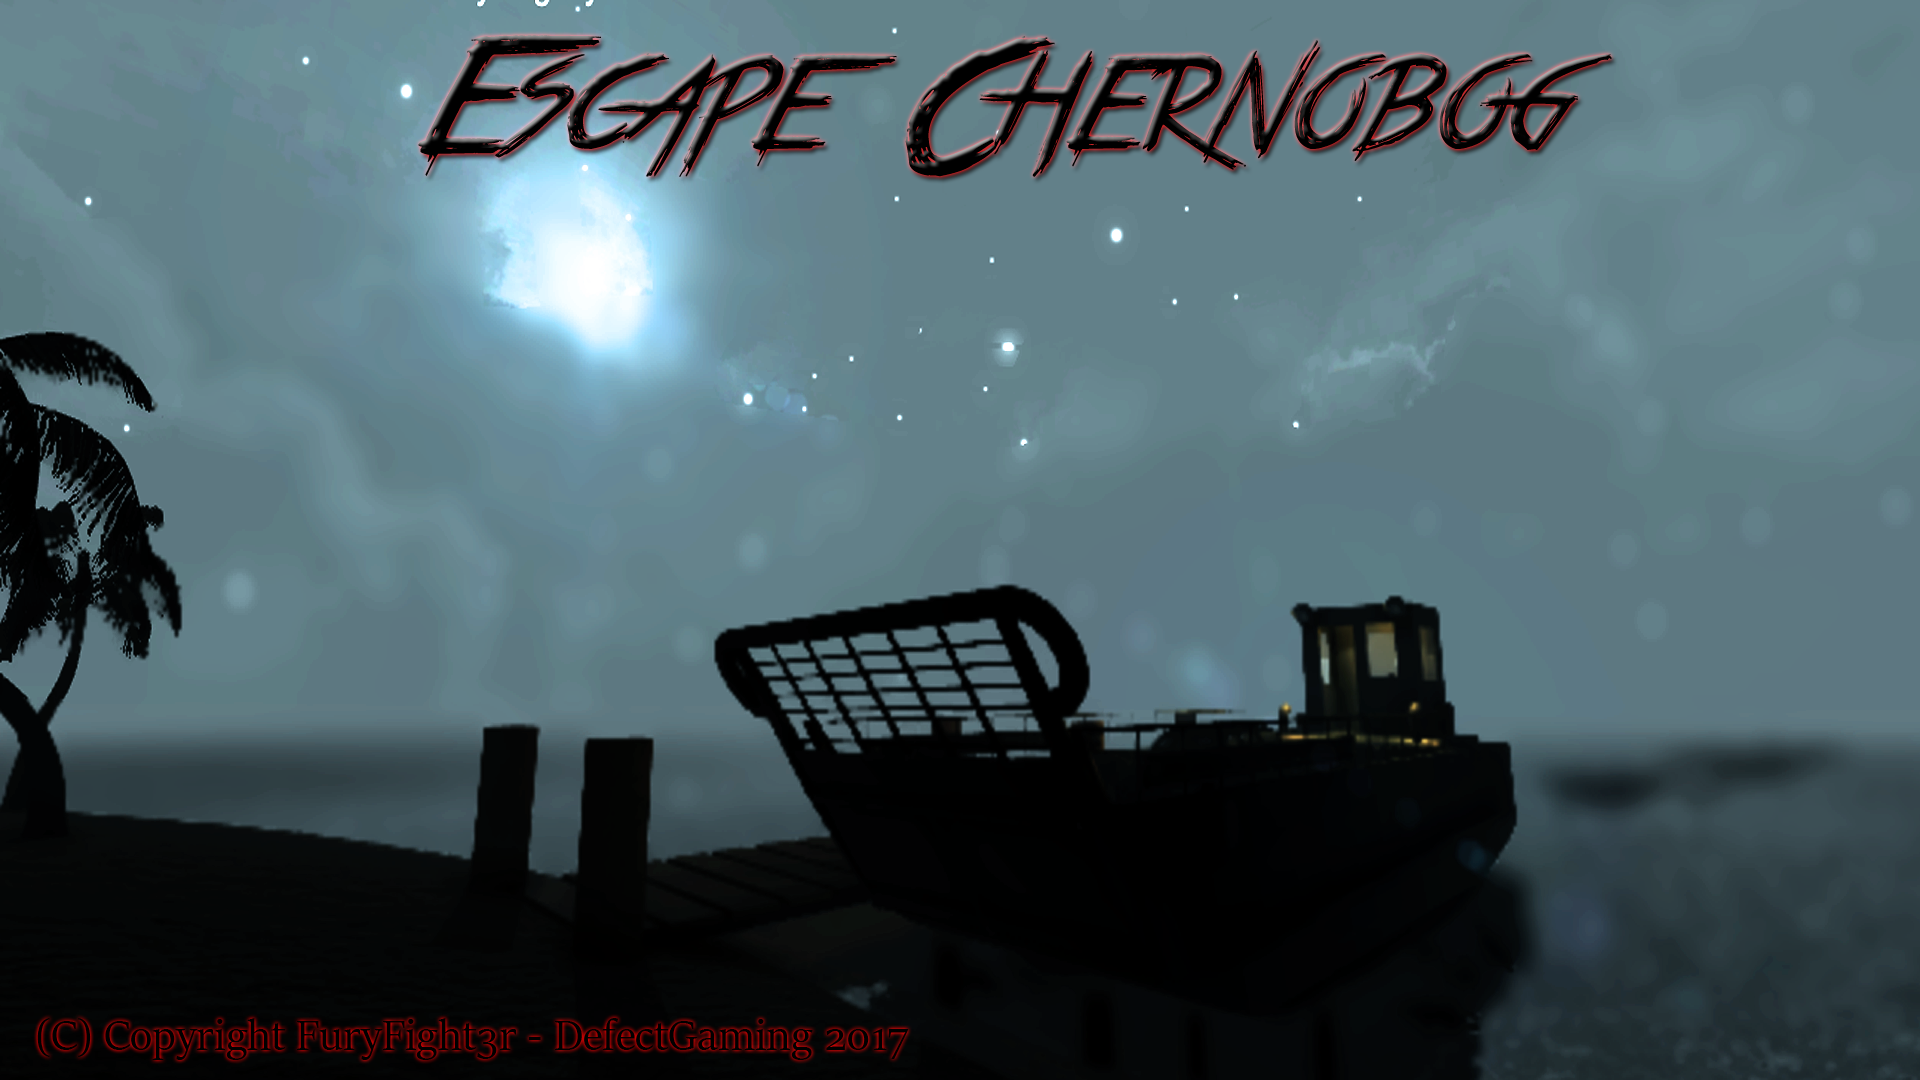 Escape Chernobog